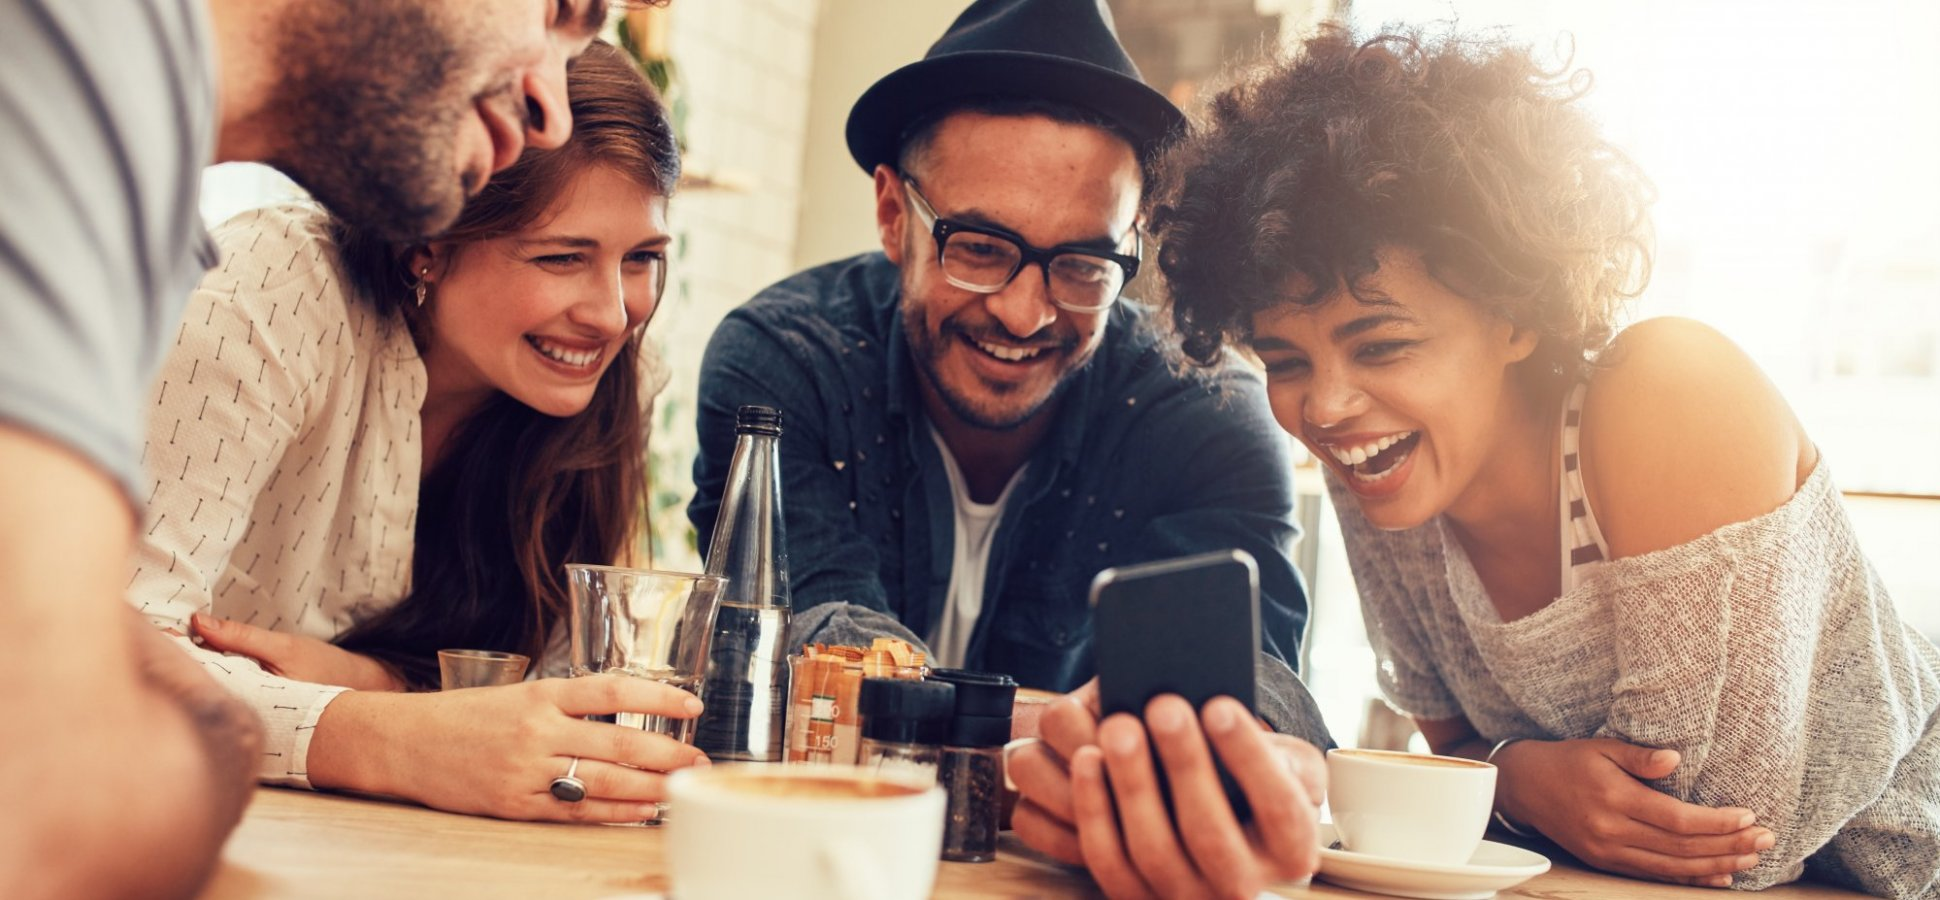 8dbbe922ec6 3 Ways Millennials Differ from Generation Z in 2019 Trends